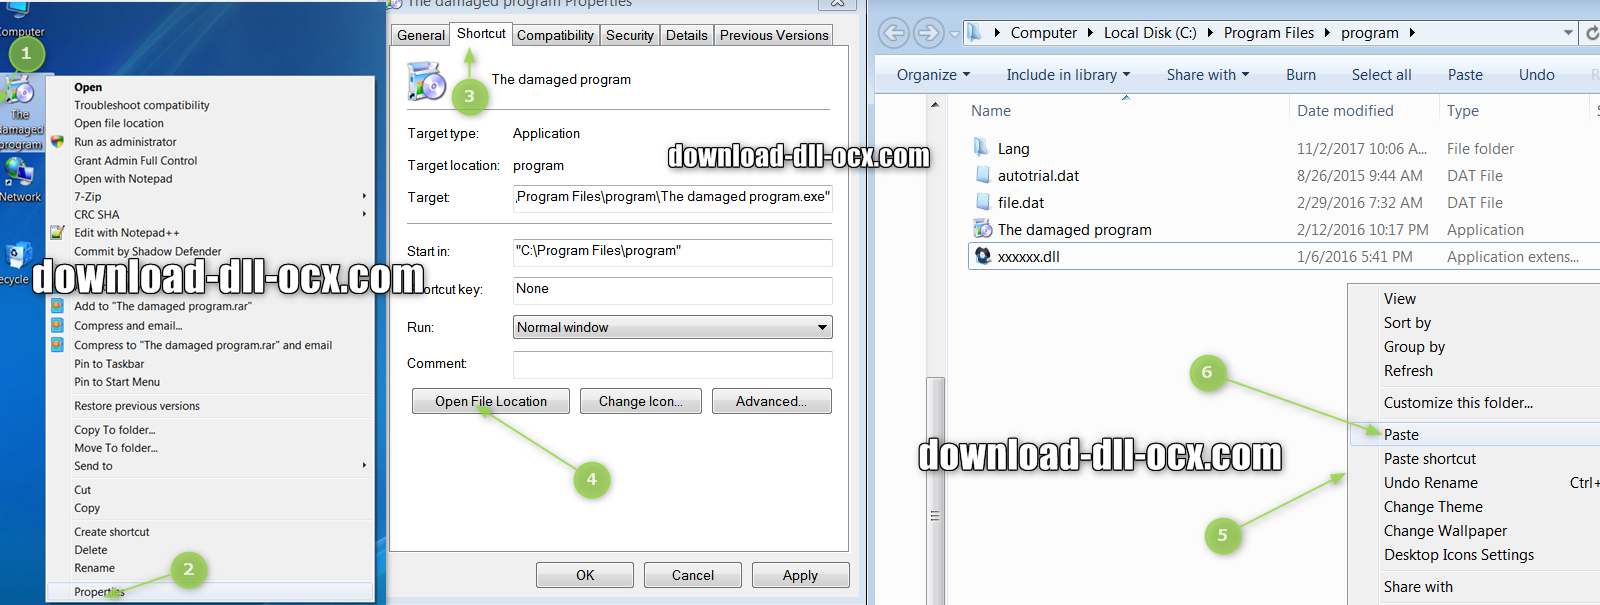 how to install Dswhipres.dll file? for fix missing